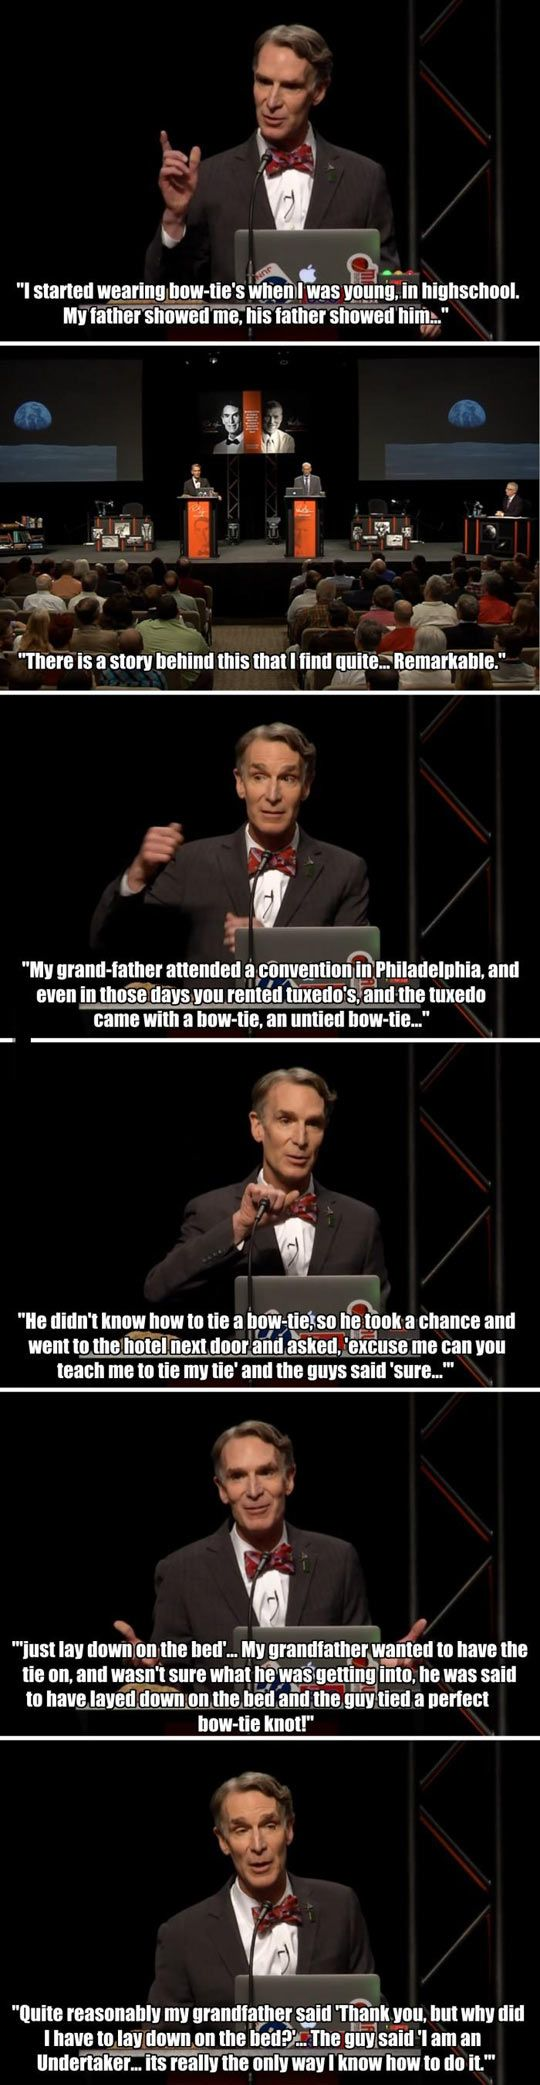 XD LOL bow ties and undertakers. Twisted humor and Bill Nye